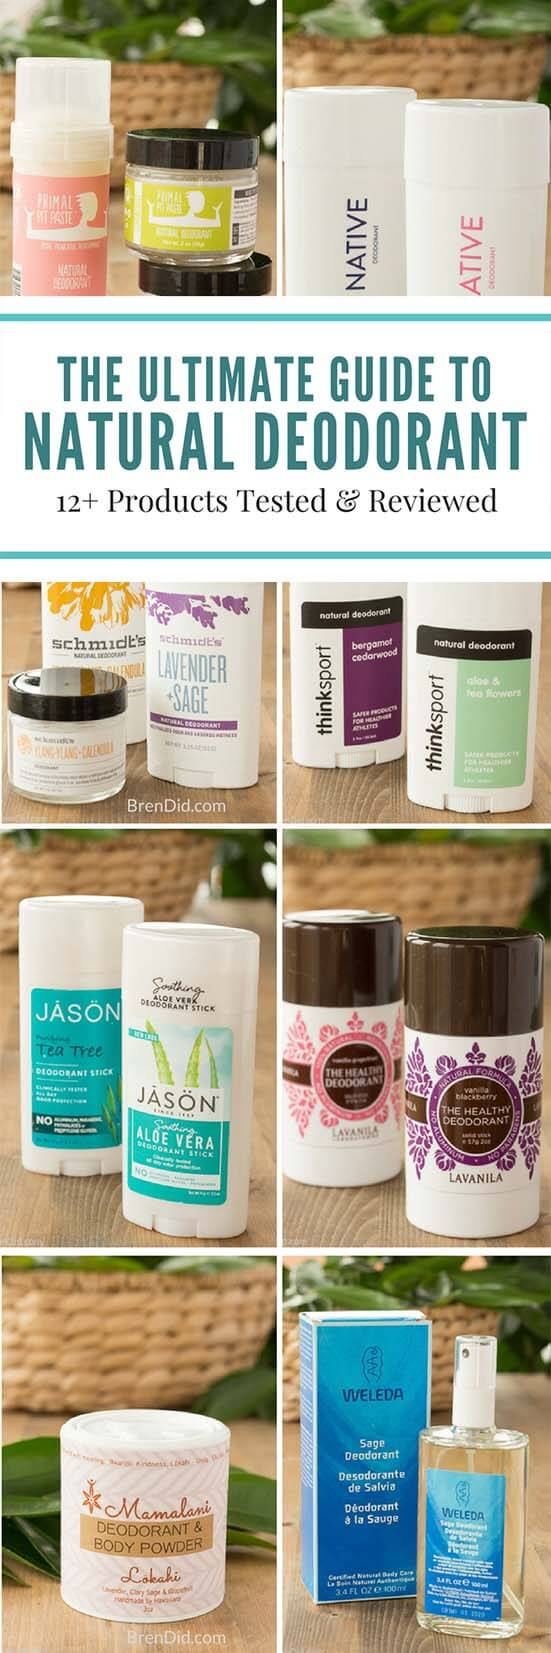 12 natural deodorant products tested and reviewed. Learn why you should ditch antiperspirant and which natural deodorants keep you healthy and smelling sweet. Plus the most effective natural deodorants tested and rated. | Natural deodorant that works, natural deodorant brands, natural deodorant for kids, natural deodorant for women, #allnaturaldeodorant, #naturaldeodorant, #nontoxicskincare #organicdeodorant #bodycare #naturalbeauty